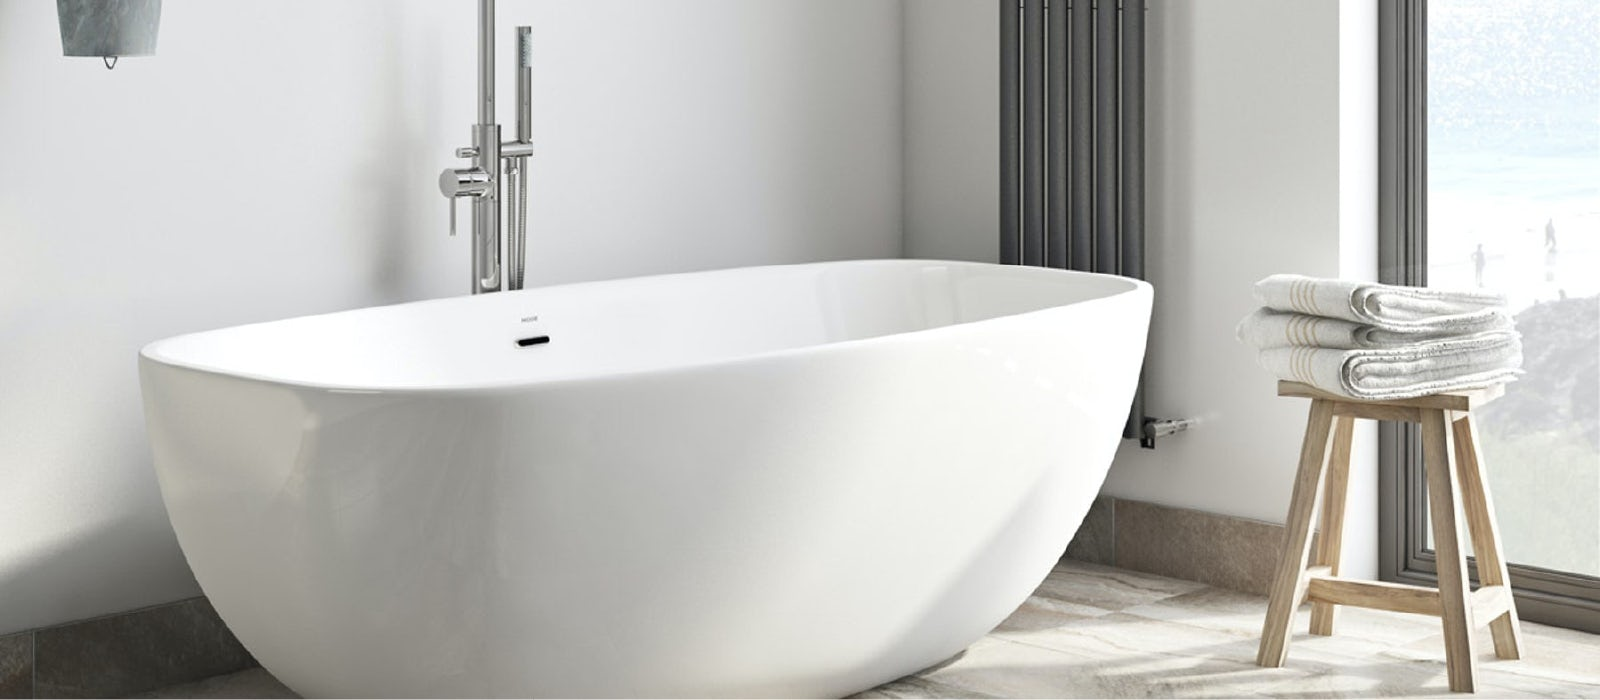 4 gorgeous freestanding baths for 2020 and beyond